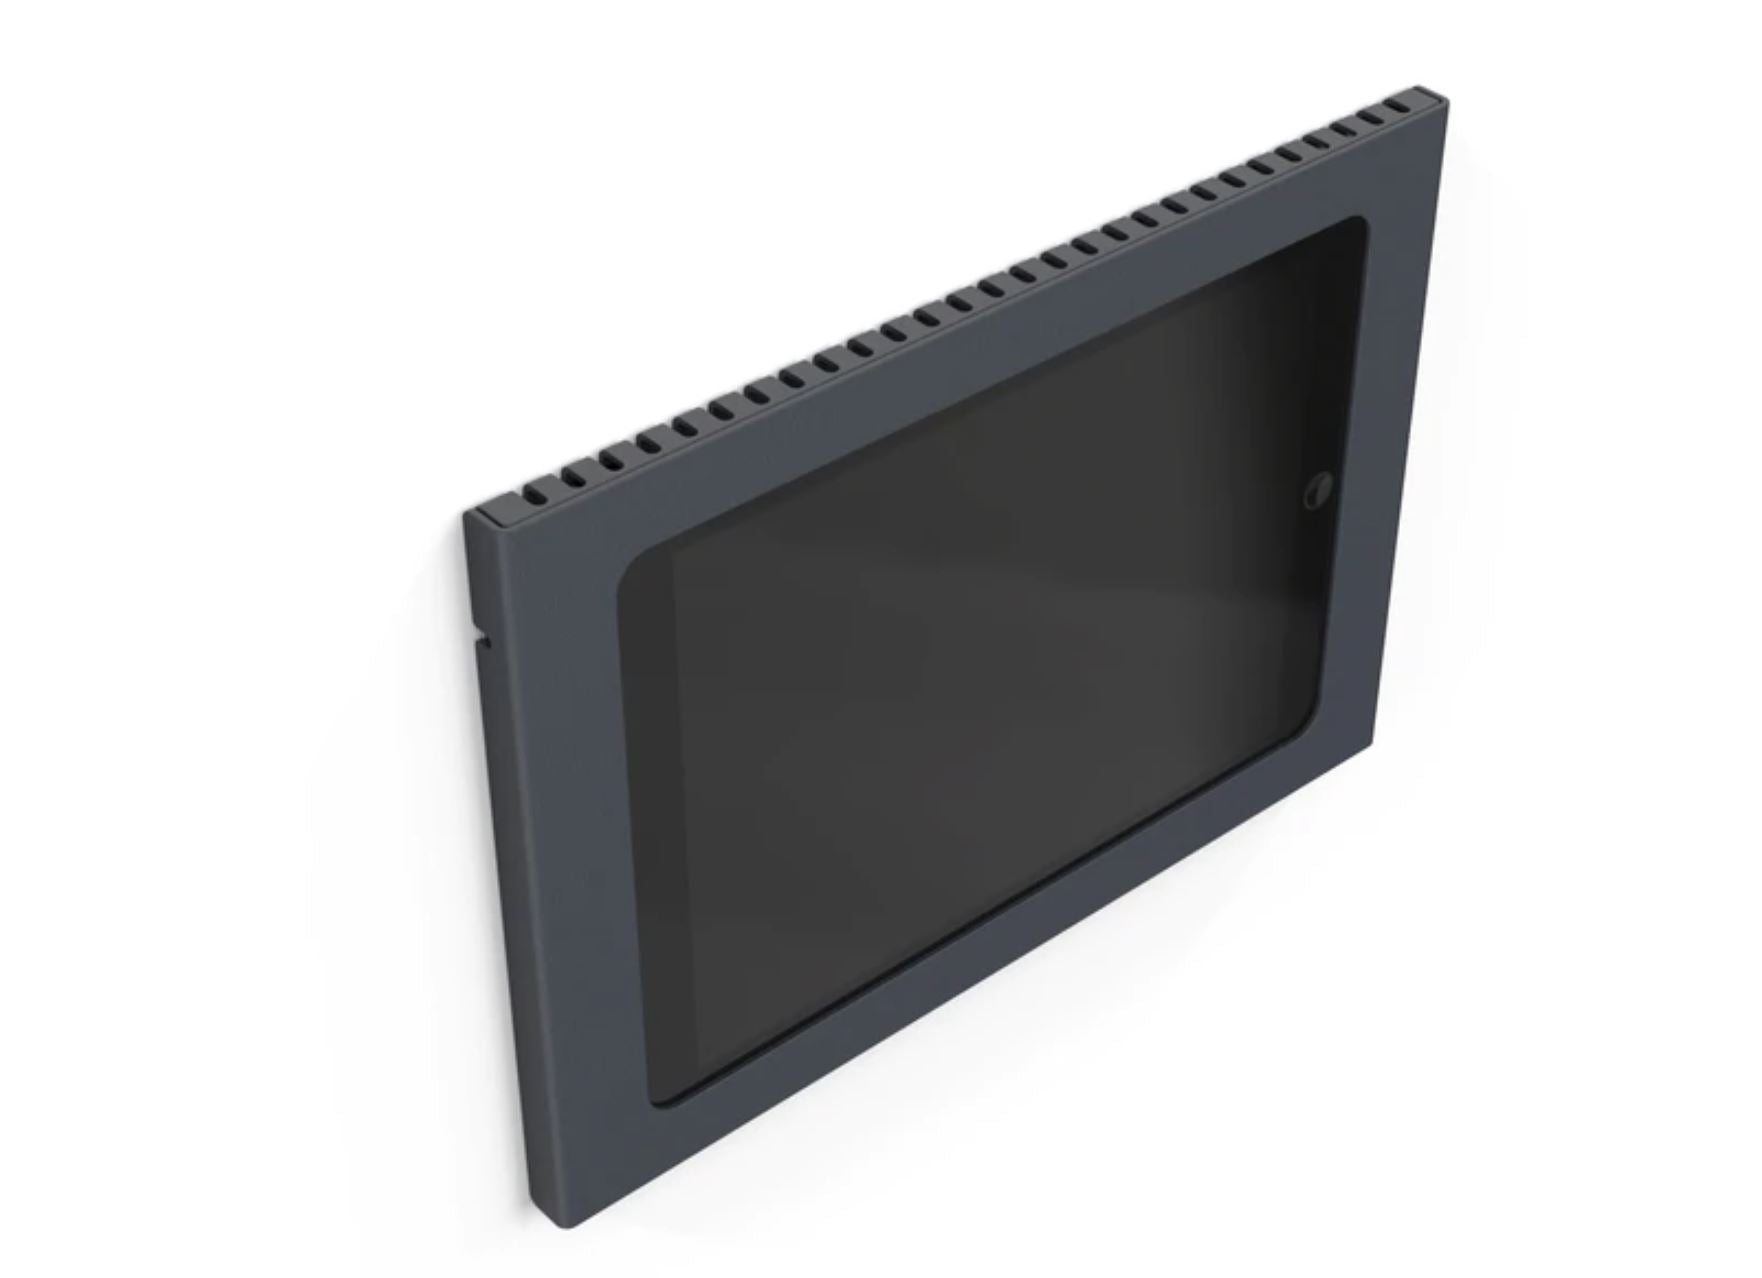 Heckler Wall Mount for iPad Mini, black color, front view